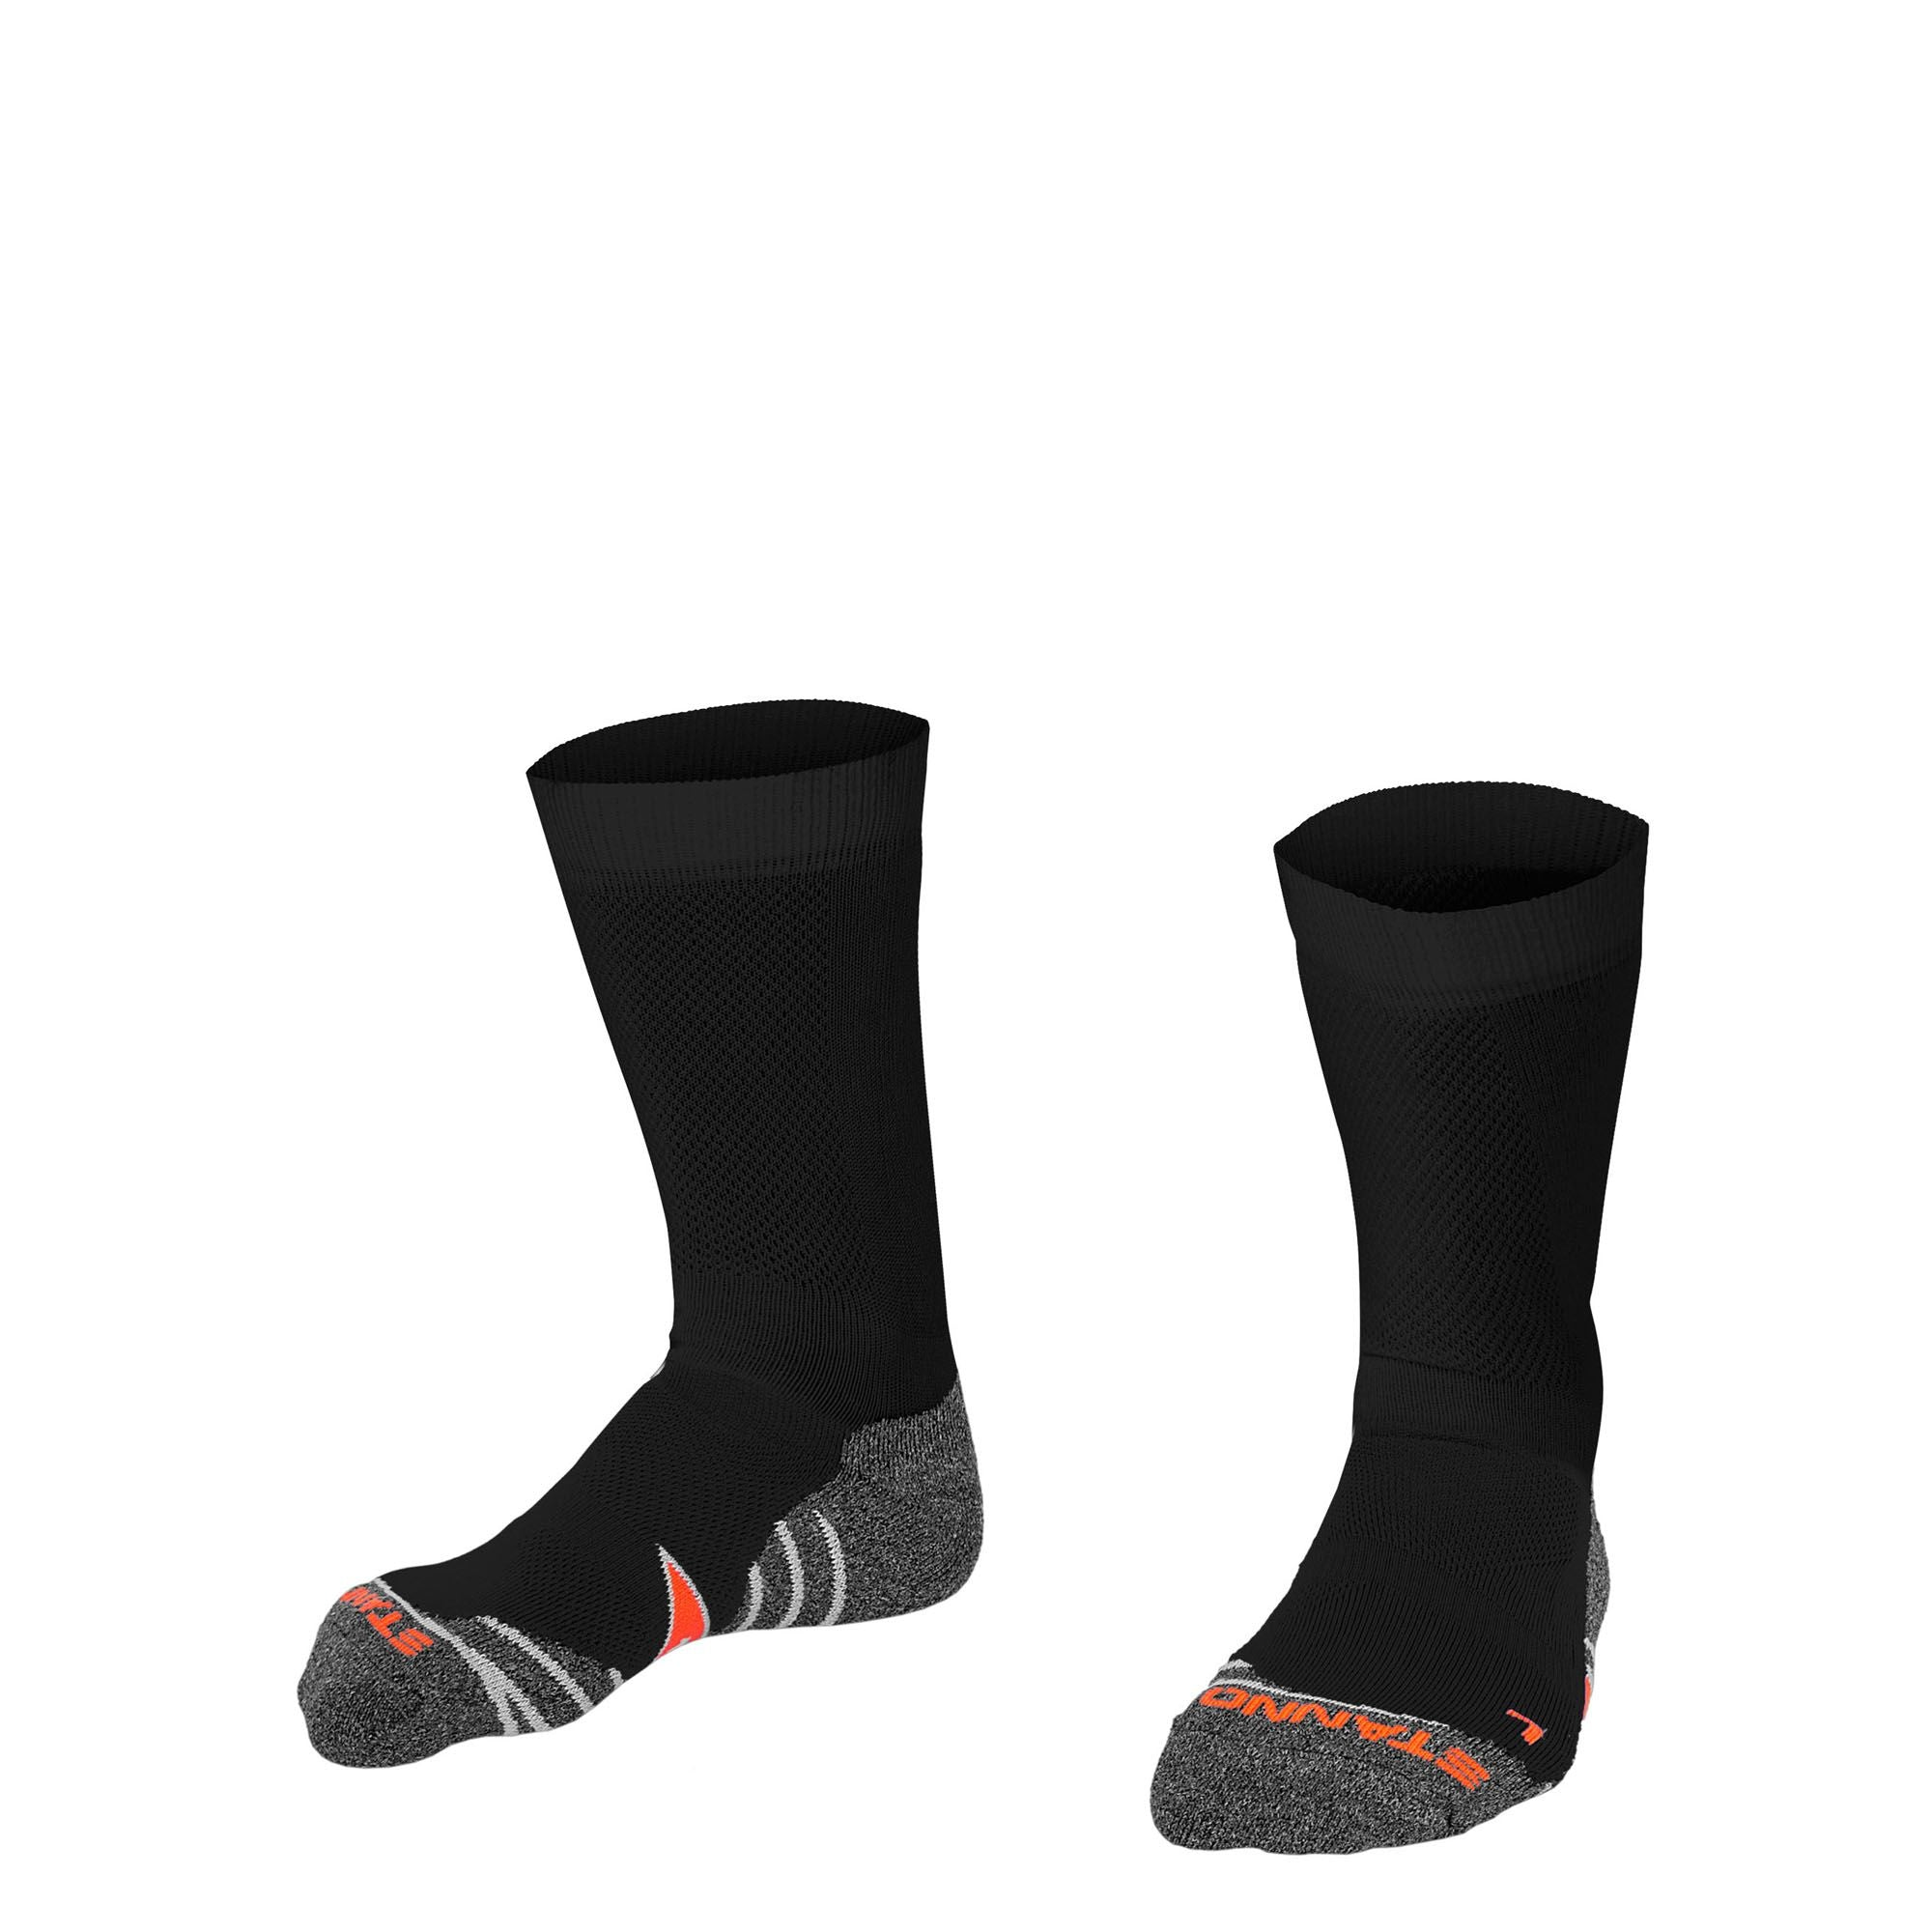 Stanno Elite sock in black with grey, white and orange sole